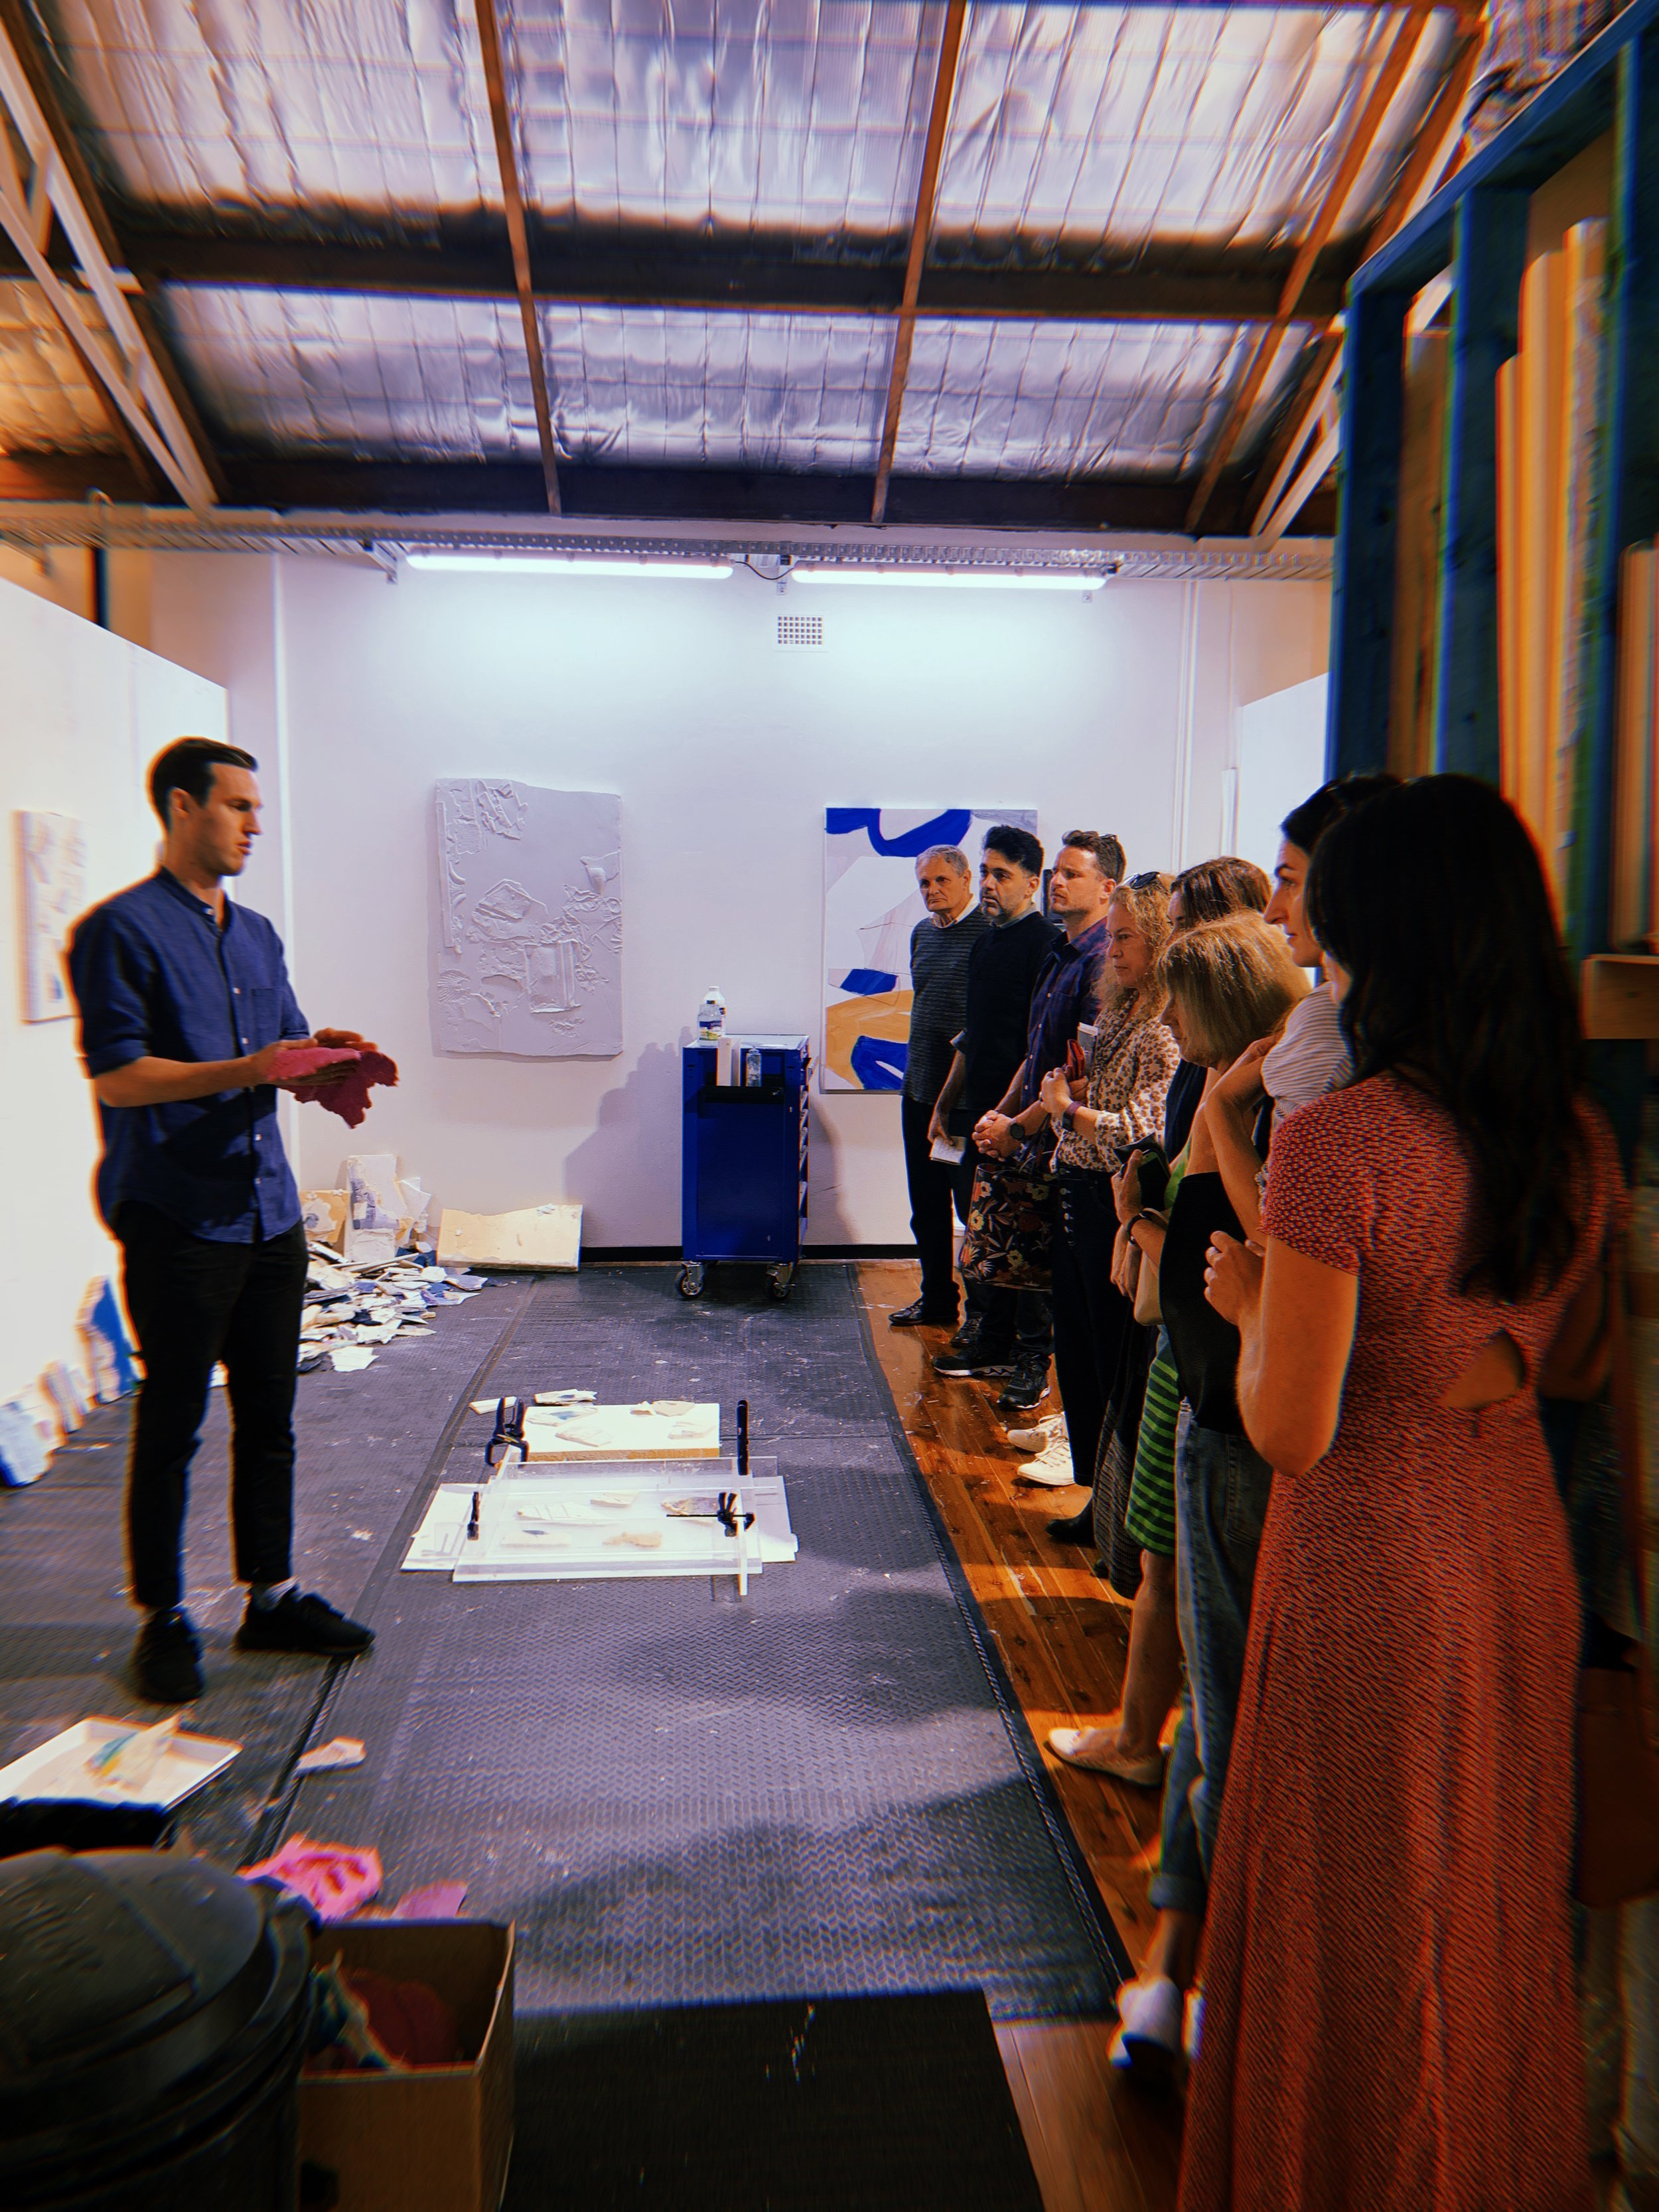 SHIRLOW ST STUDIOS-Open Day May 2019_Photo Mariam Arcilla_2019-05-04 14_38_54.449.JPG